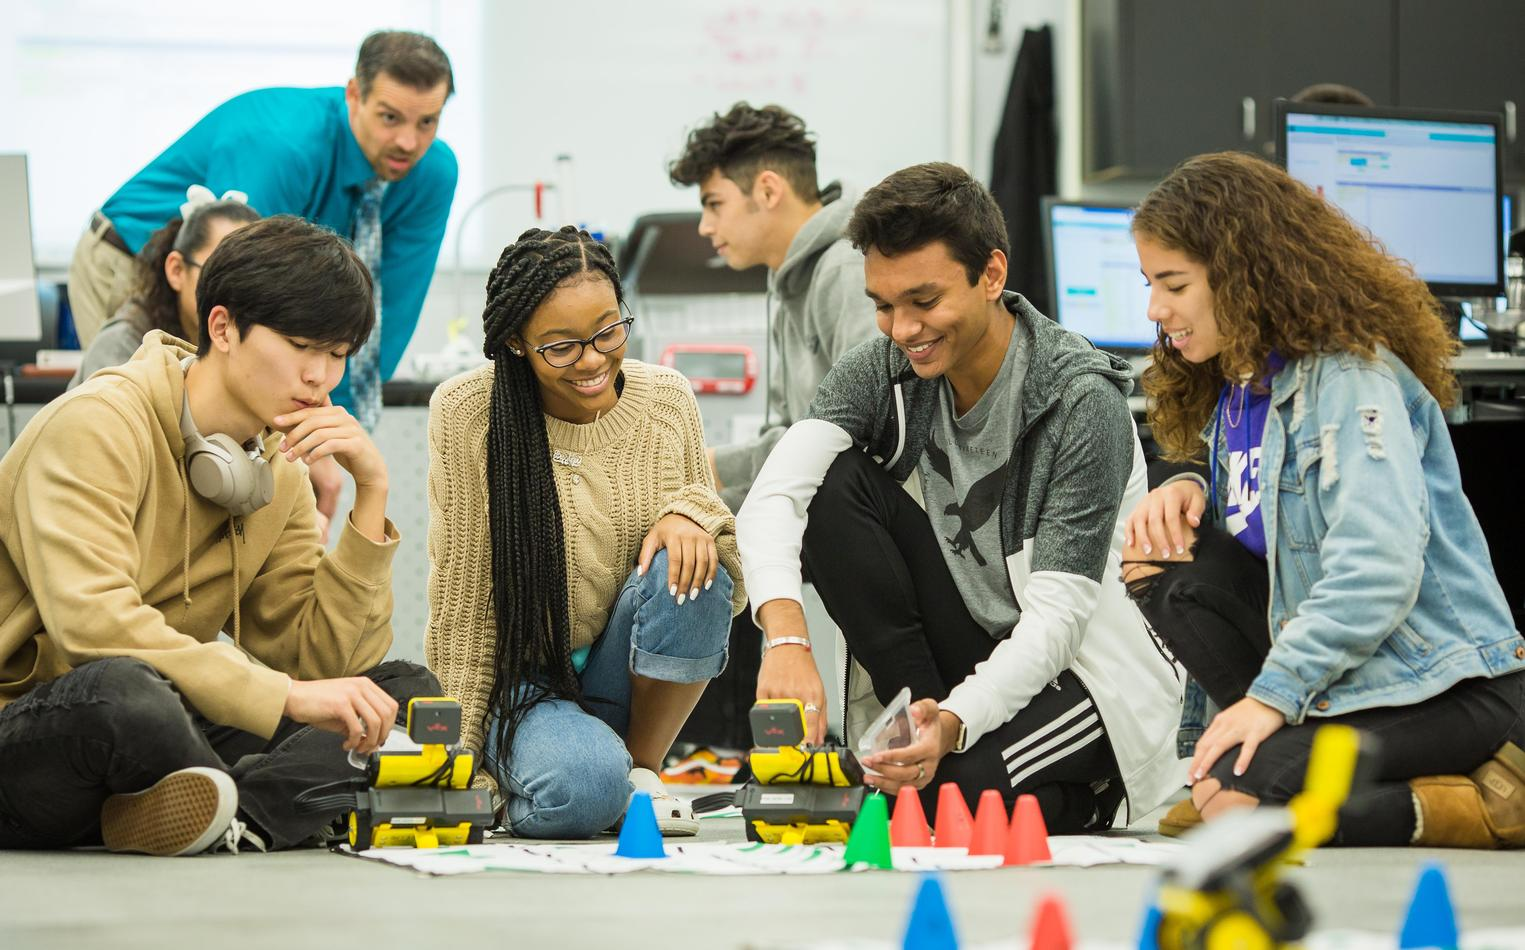 A group of students explore using remote controlled robots.